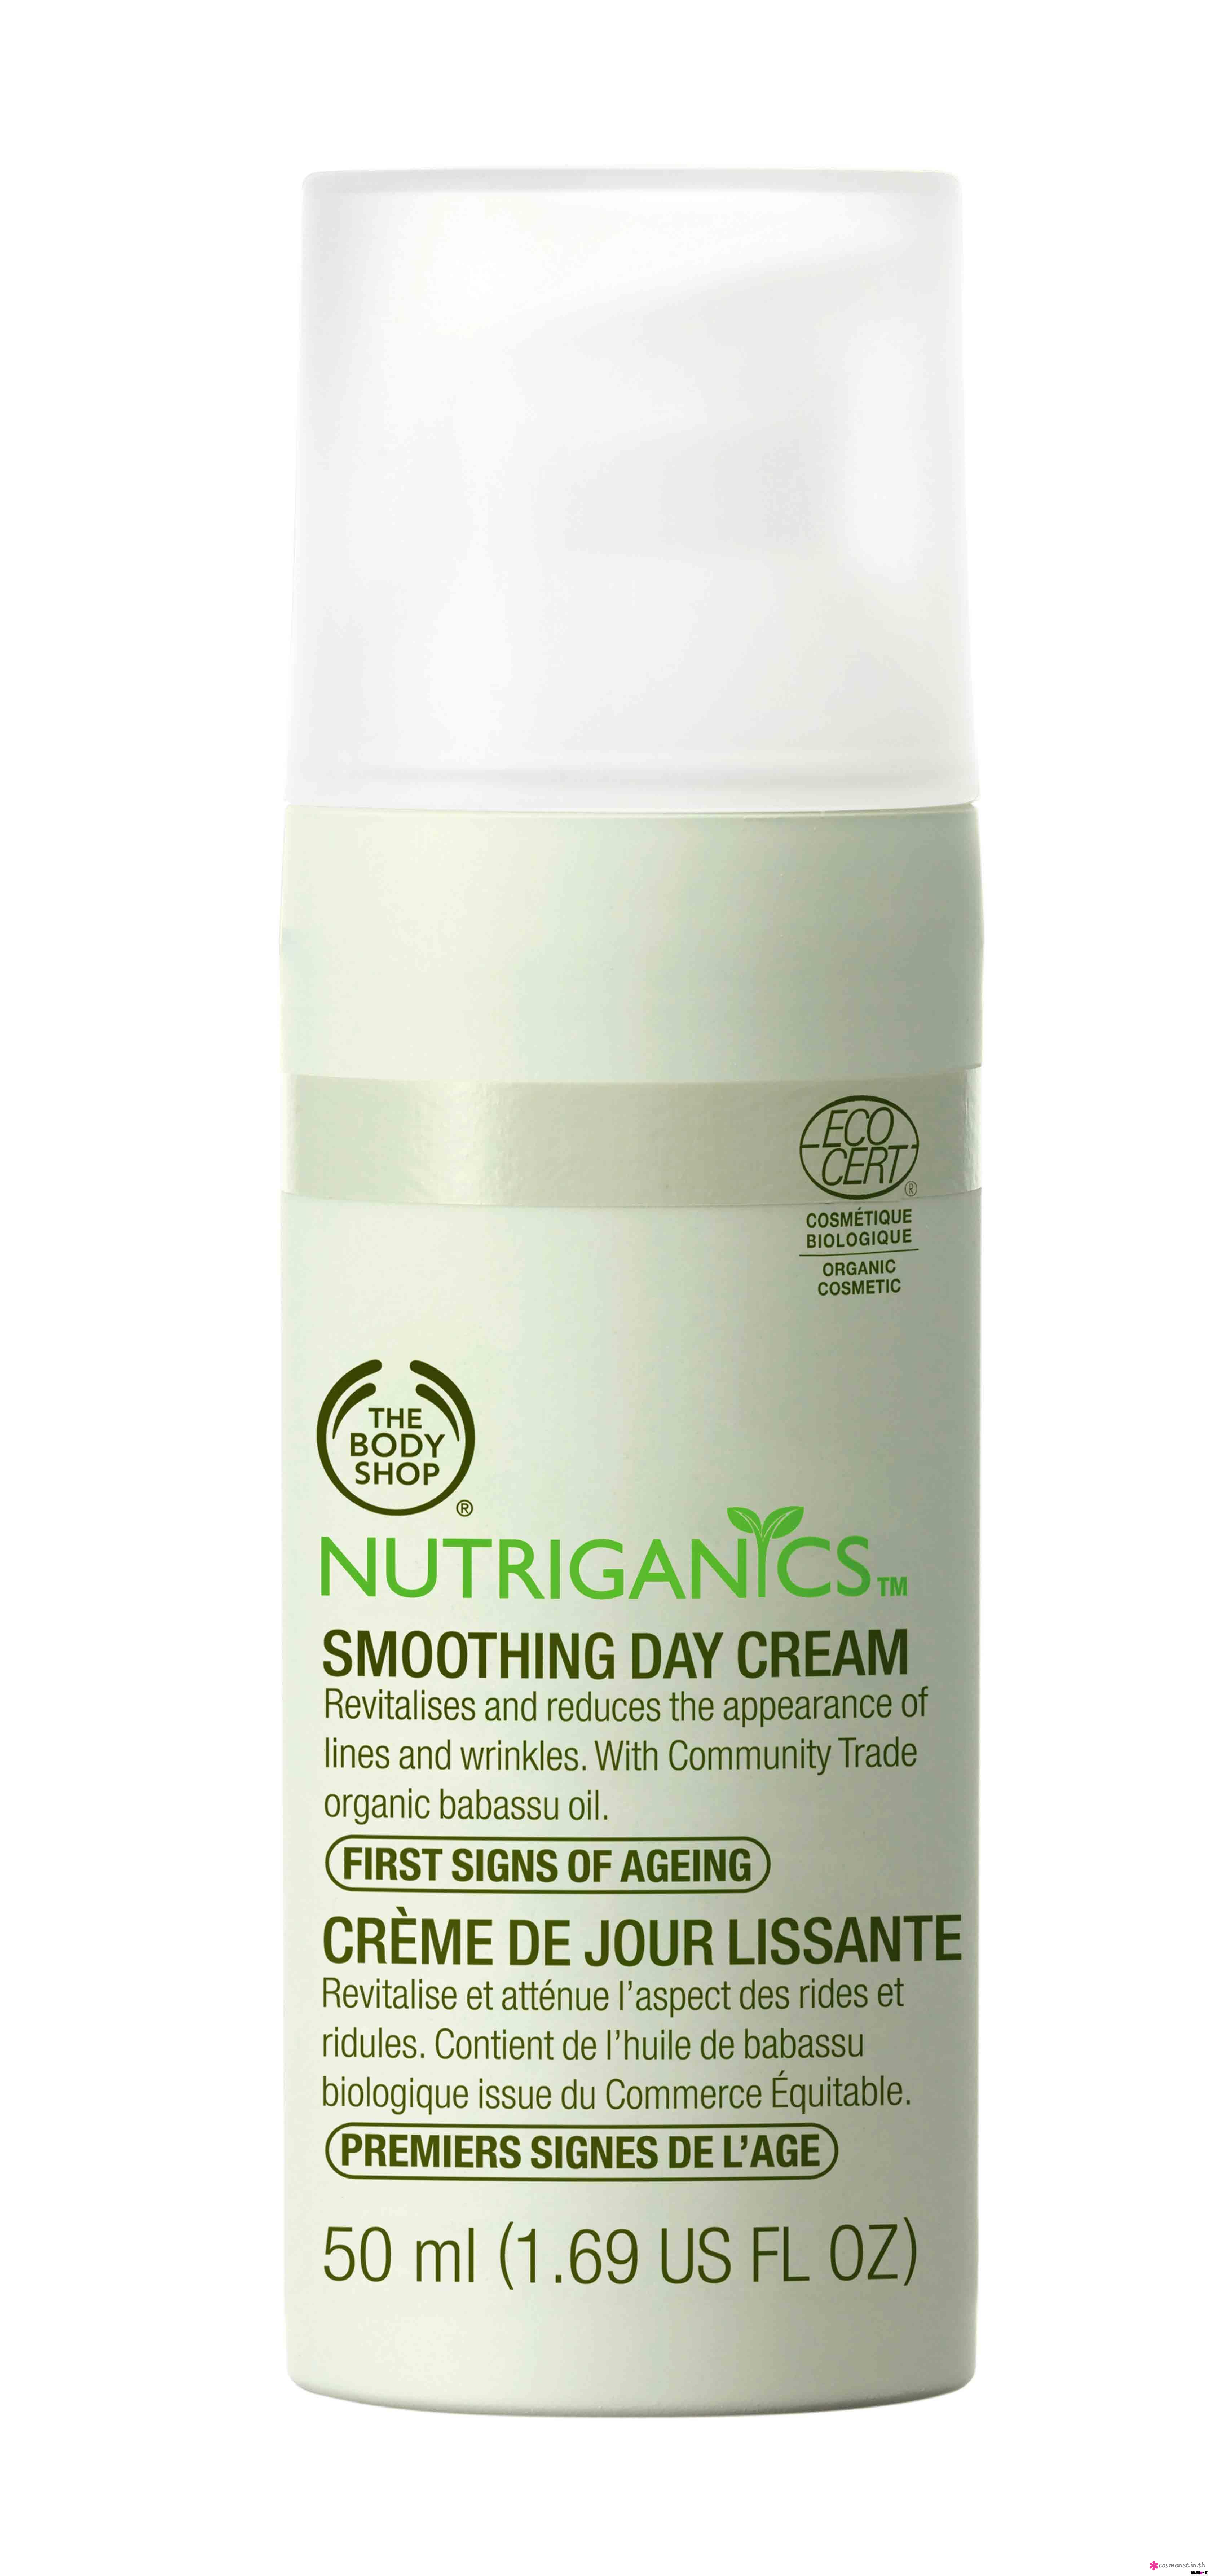 Nutriganics Smoothing Day Cream (Hero)